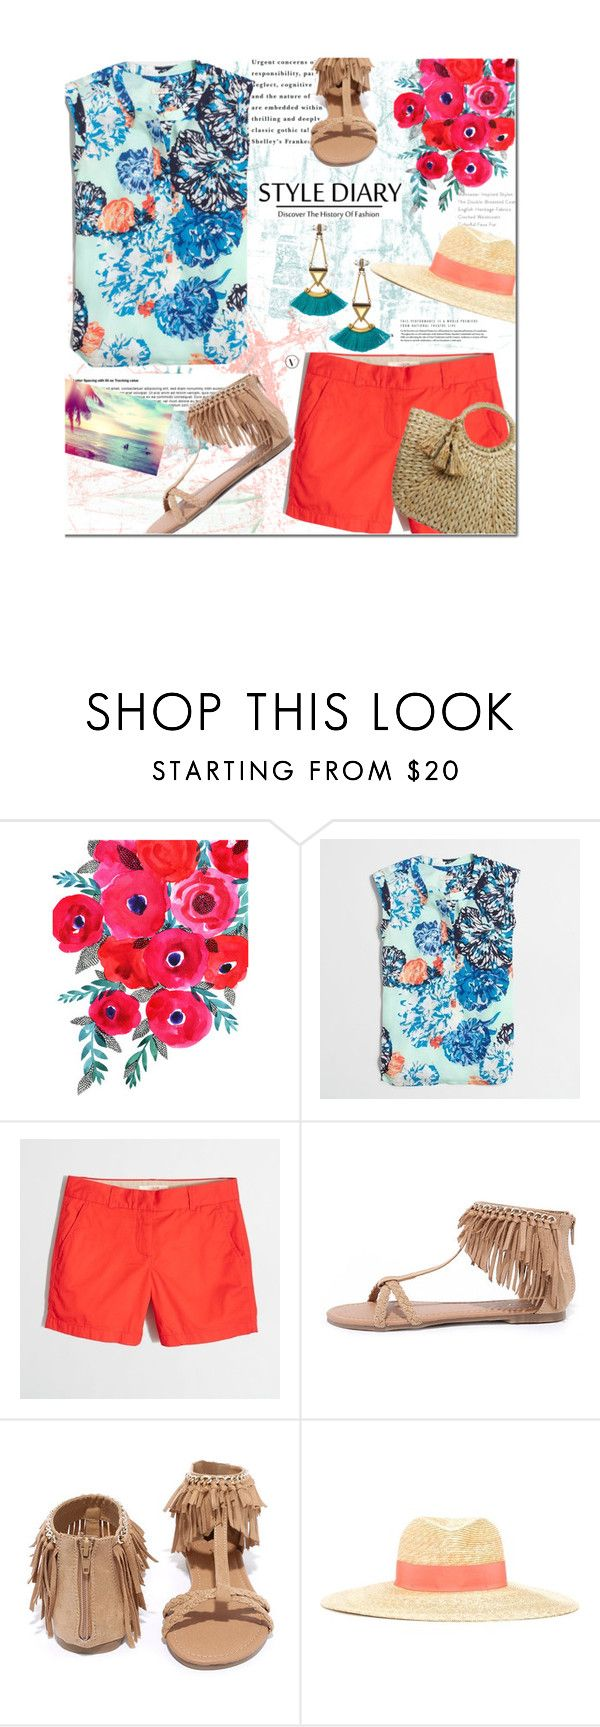 """""""Style Diary:outfit of the day"""" by bamaannie ❤ liked on Polyvore featuring J.Crew, Qupid, Lanvin and Stella & Dot"""